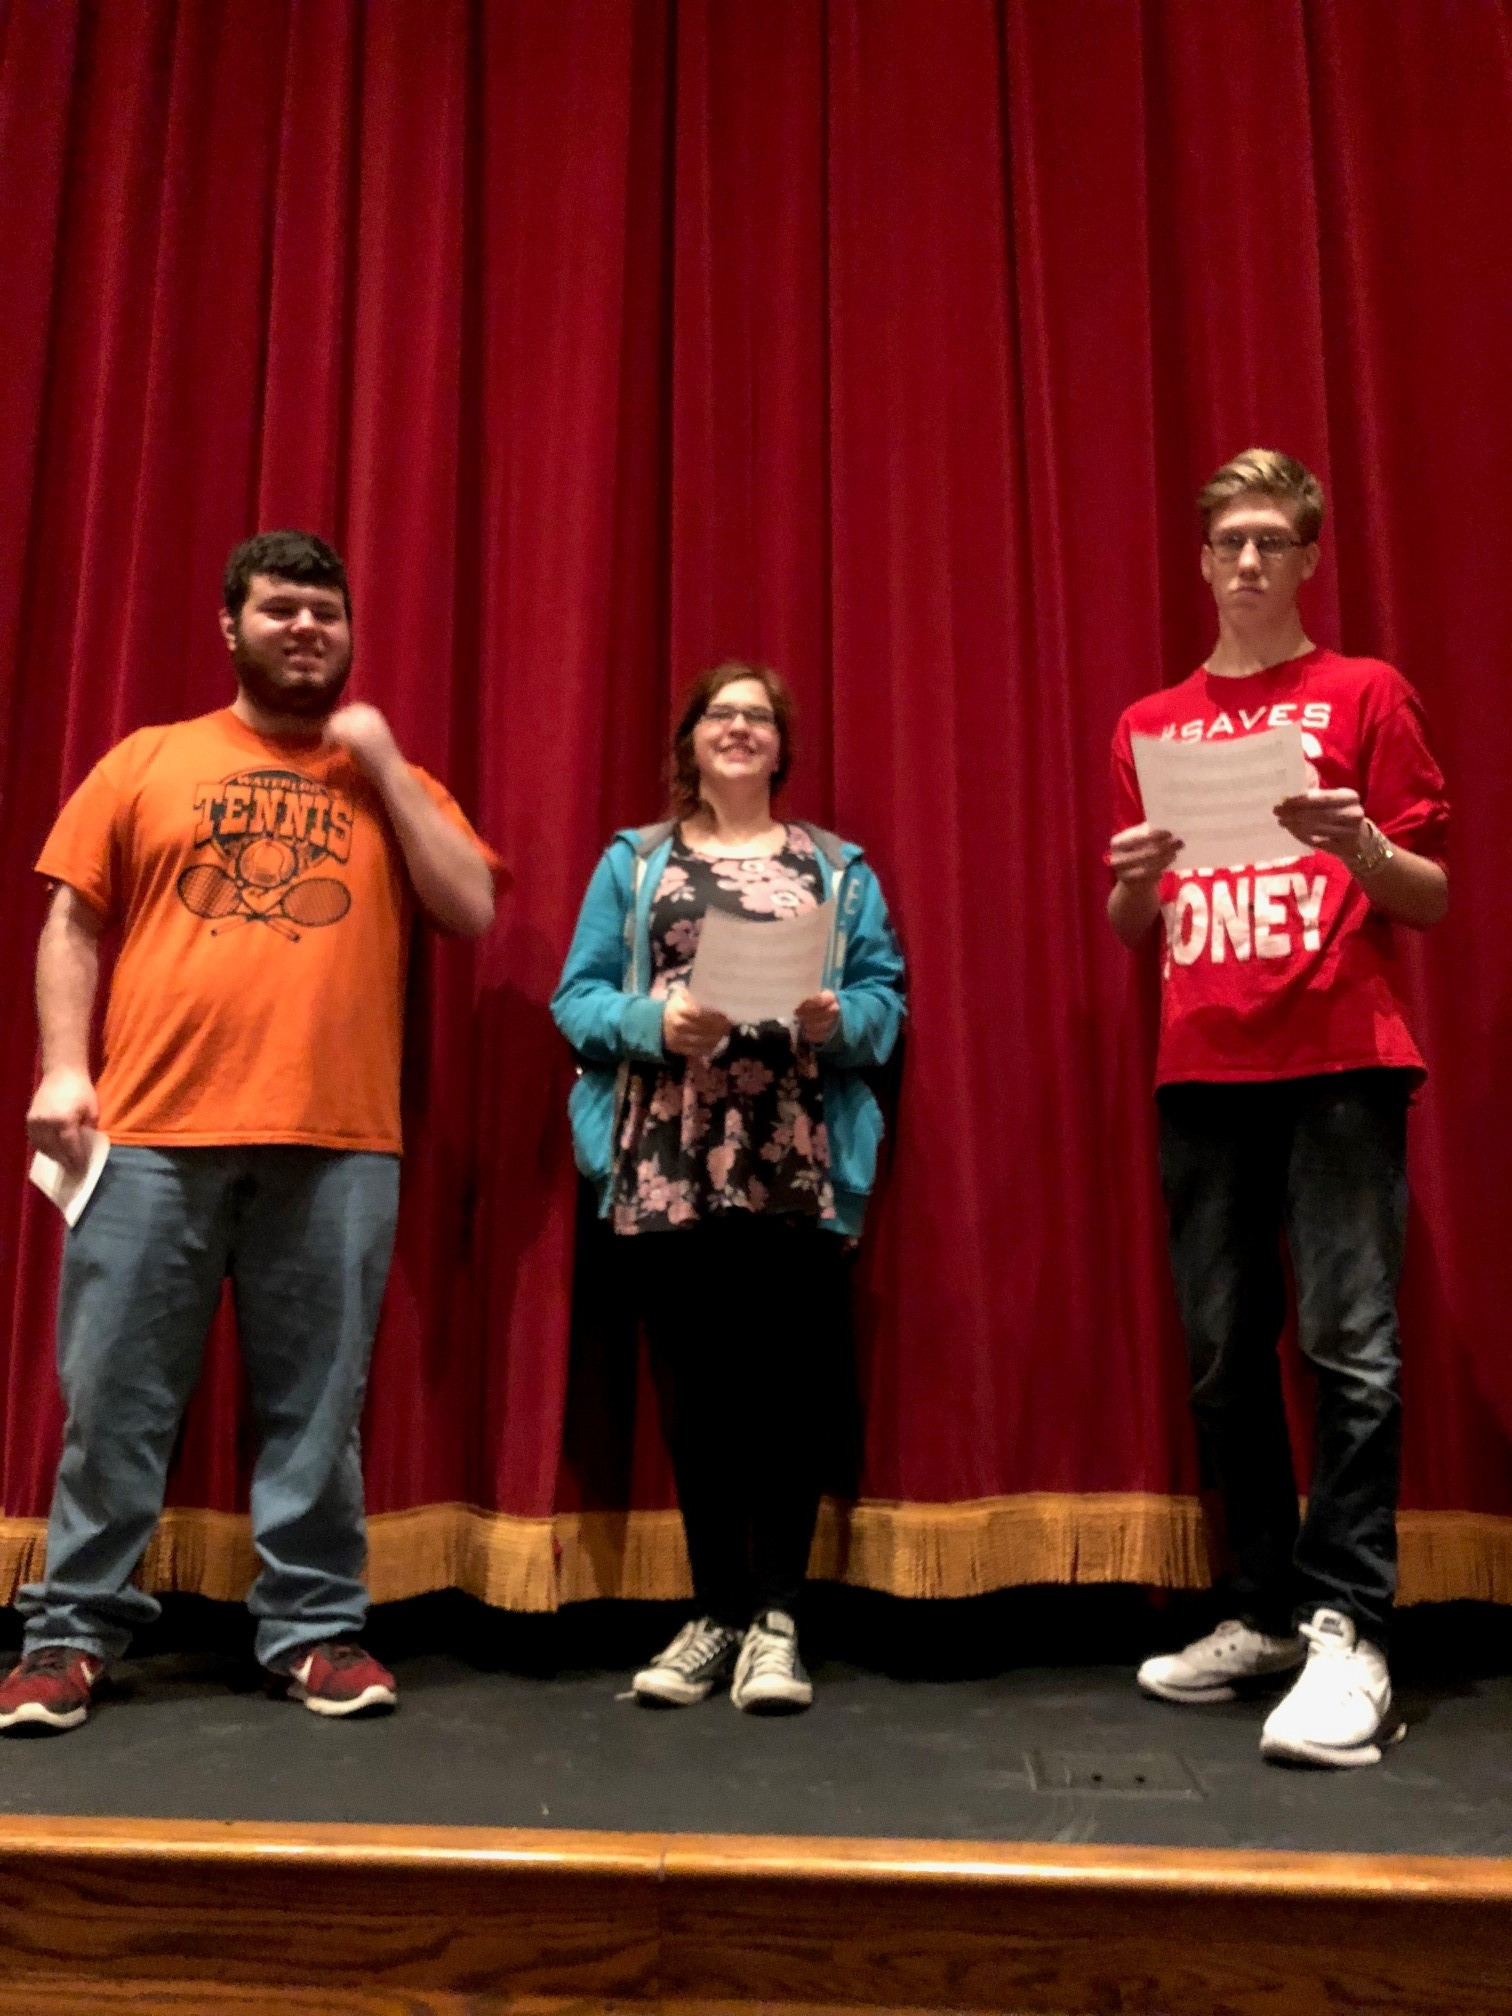 Reality Check youth (Left to Right: David McCarthy, Kim Page, Zach Pascarella)from Waterloo, NY educating the community about smoking in movies.